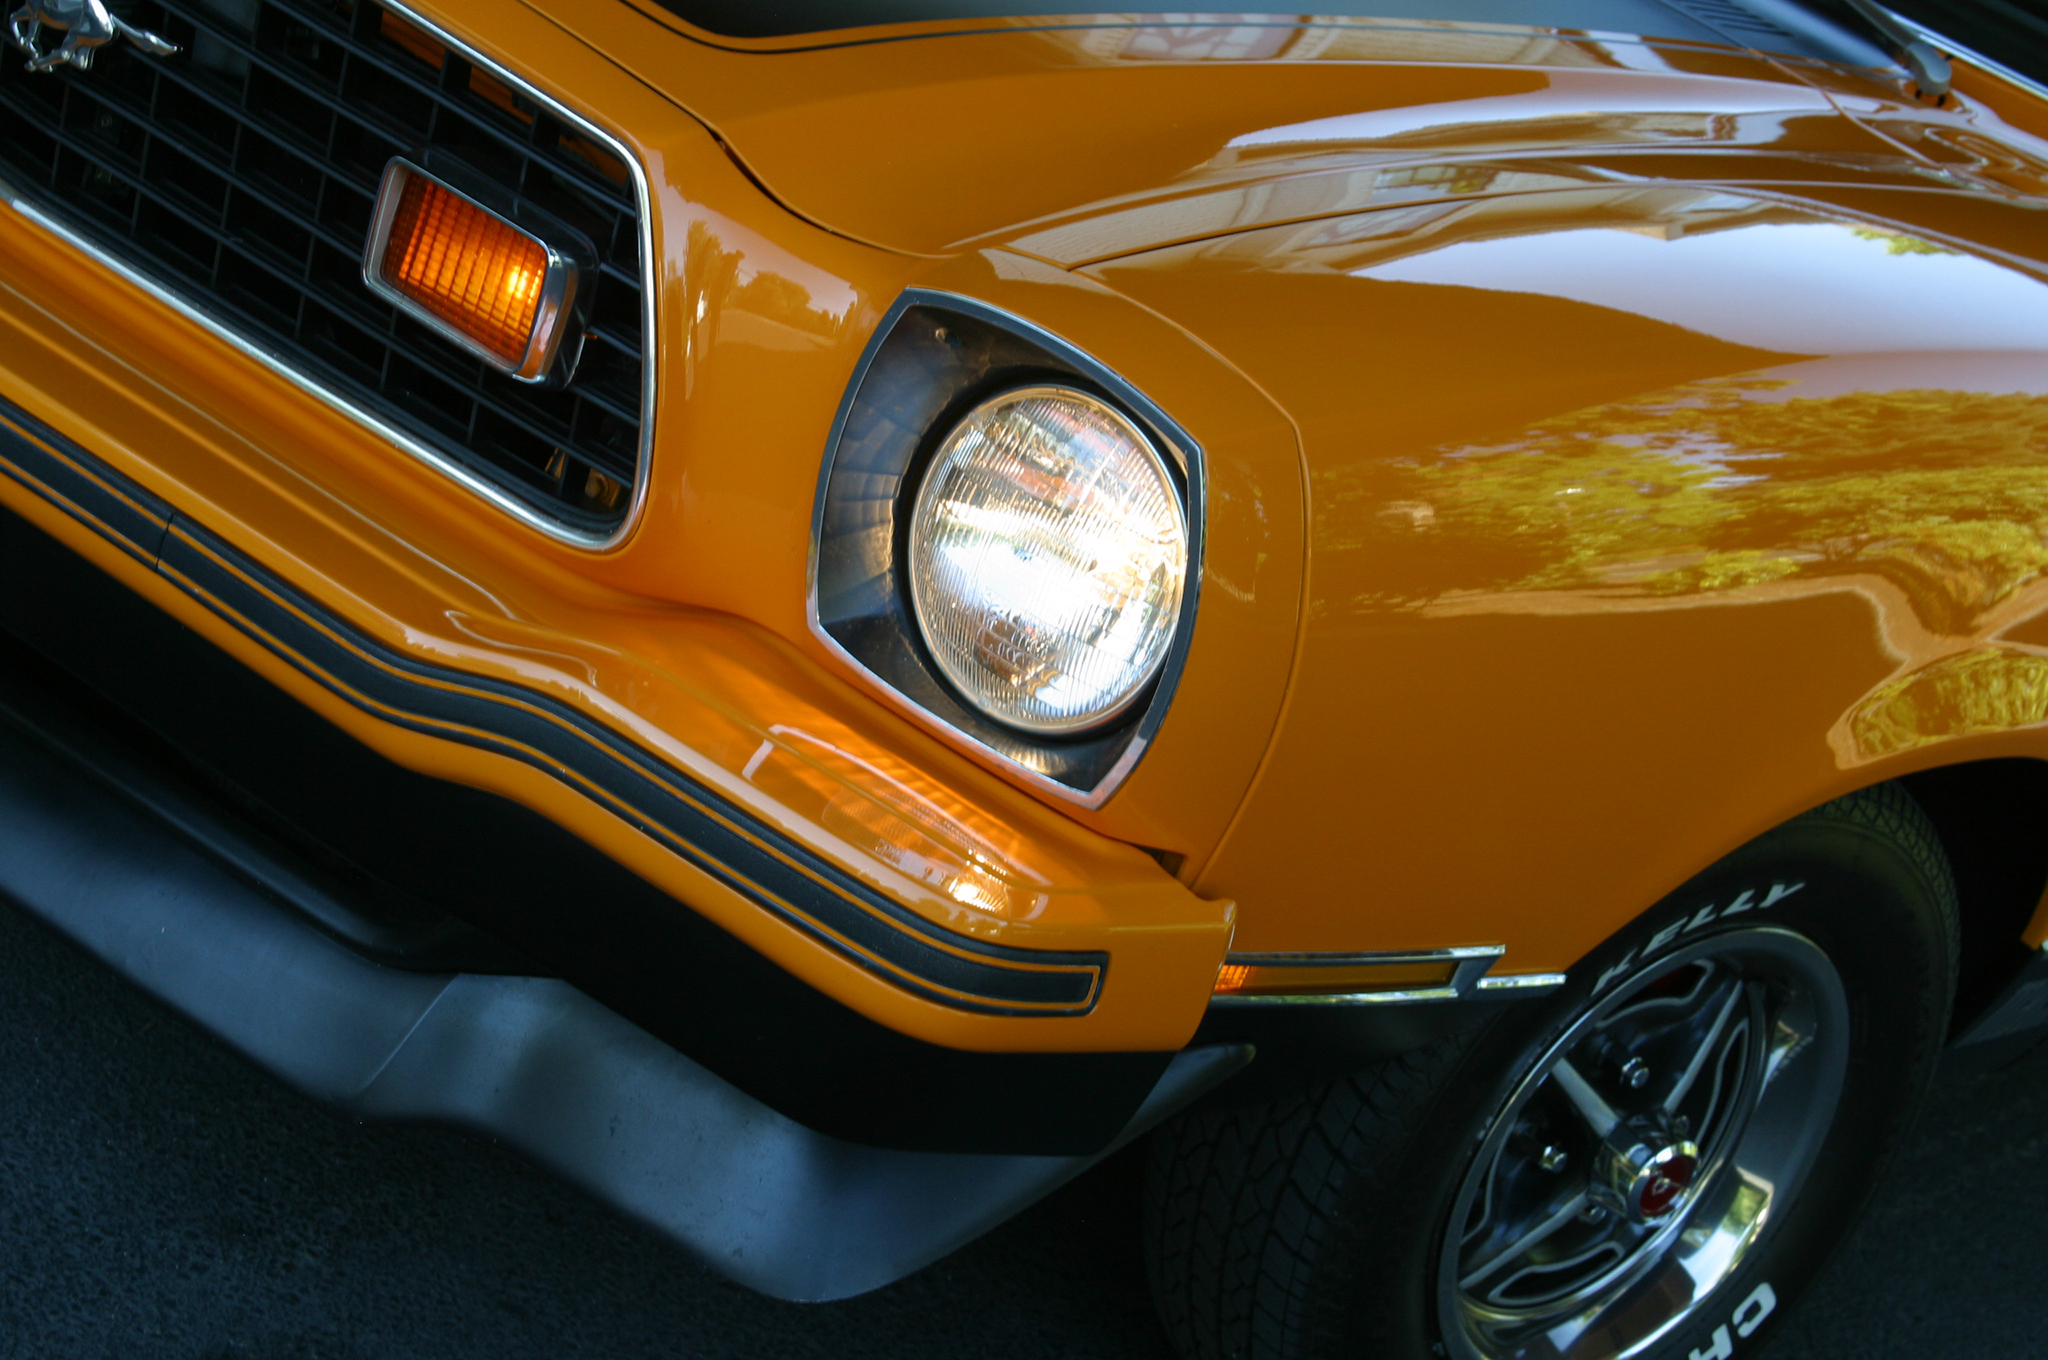 A Mach 1 for 1976 with nice Cobra II style appointments.